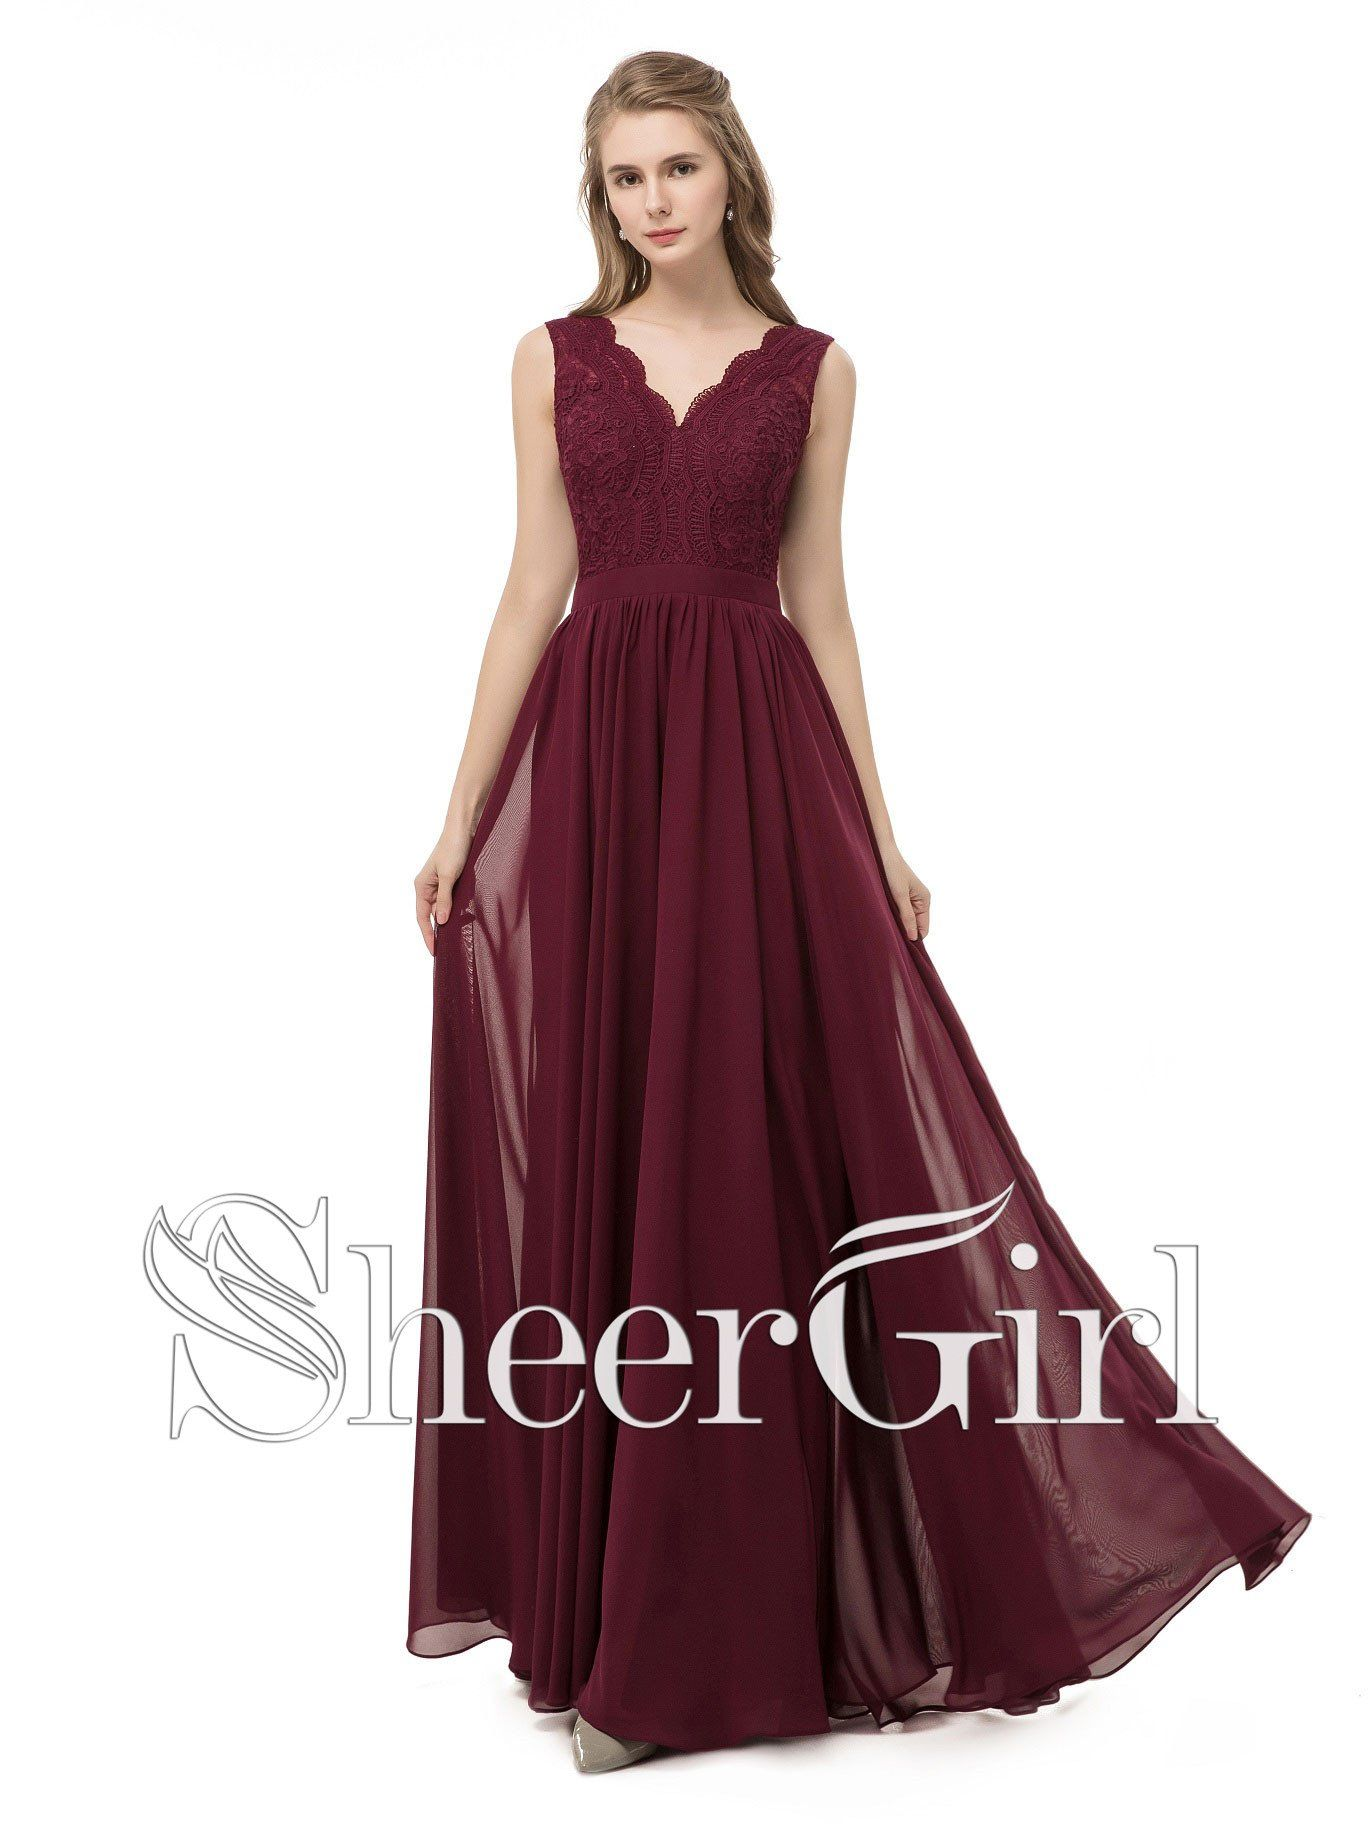 Lace and chiffon burgundy bridesmaid dresseslong simple prom